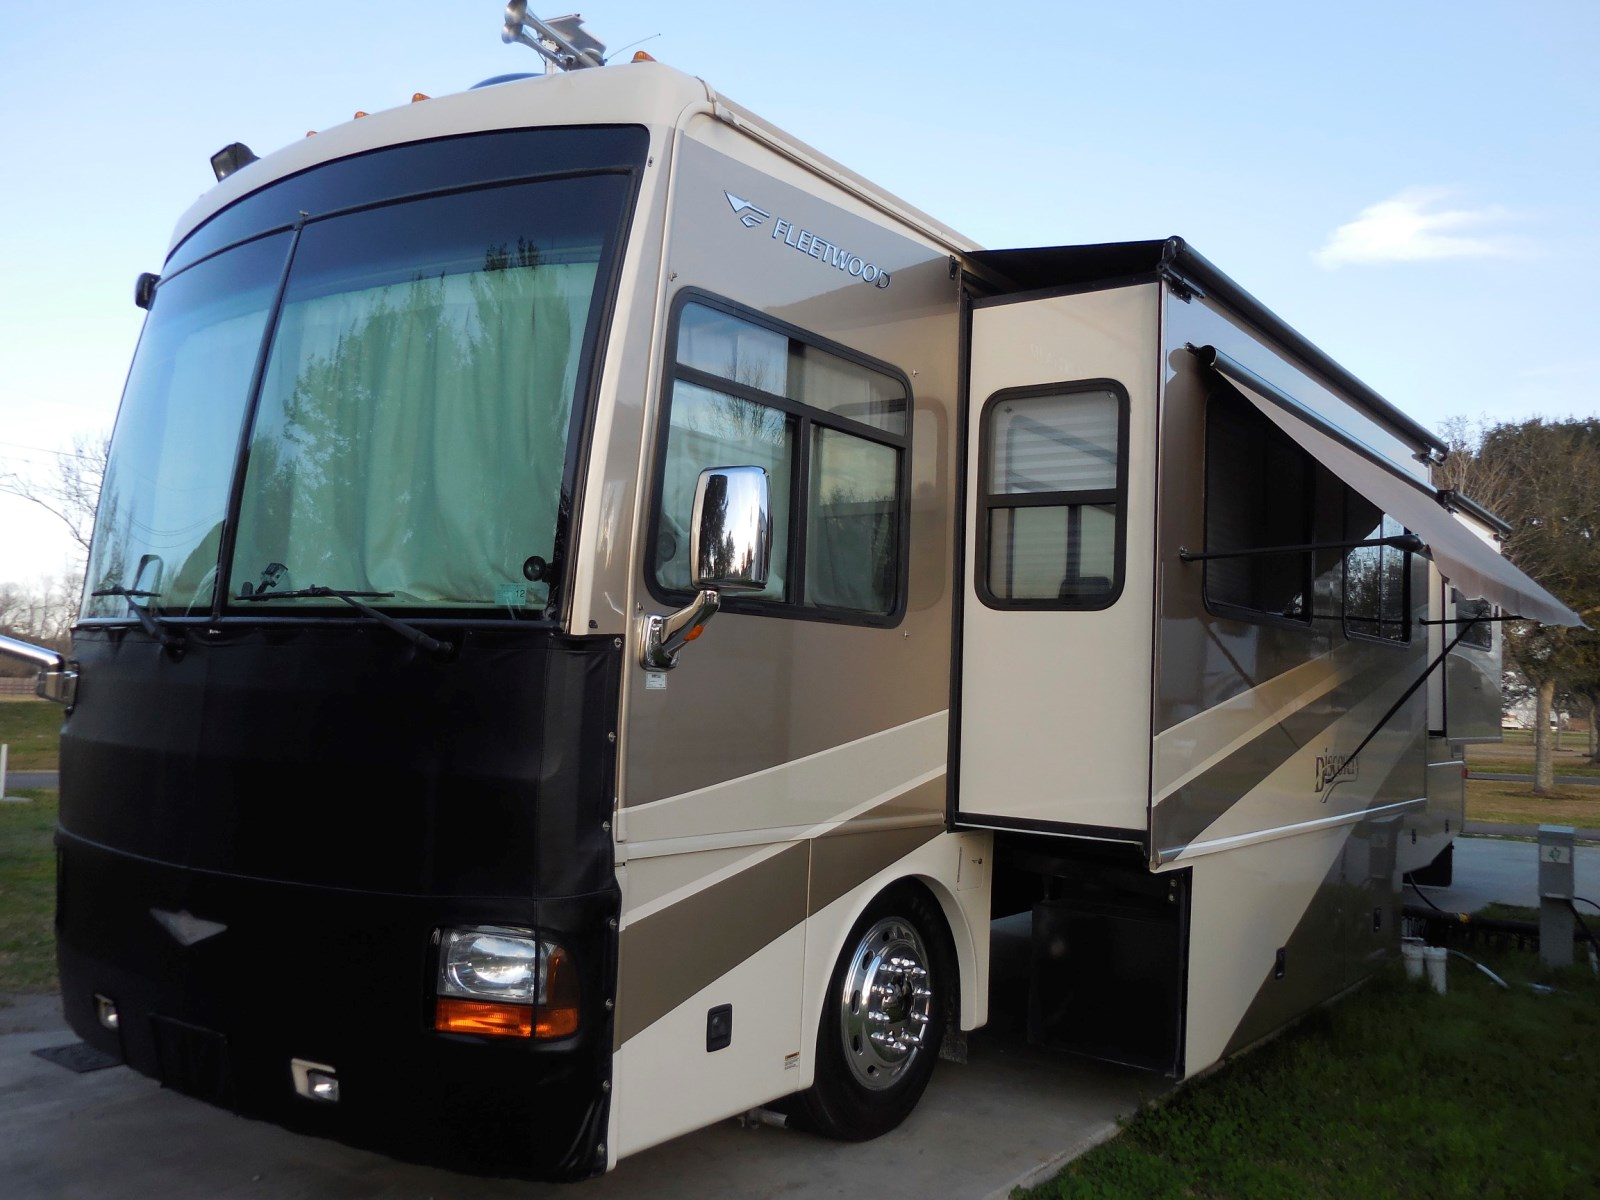 2006 fleetwood discovery 39s used motorhomes and rvs for sale. Black Bedroom Furniture Sets. Home Design Ideas